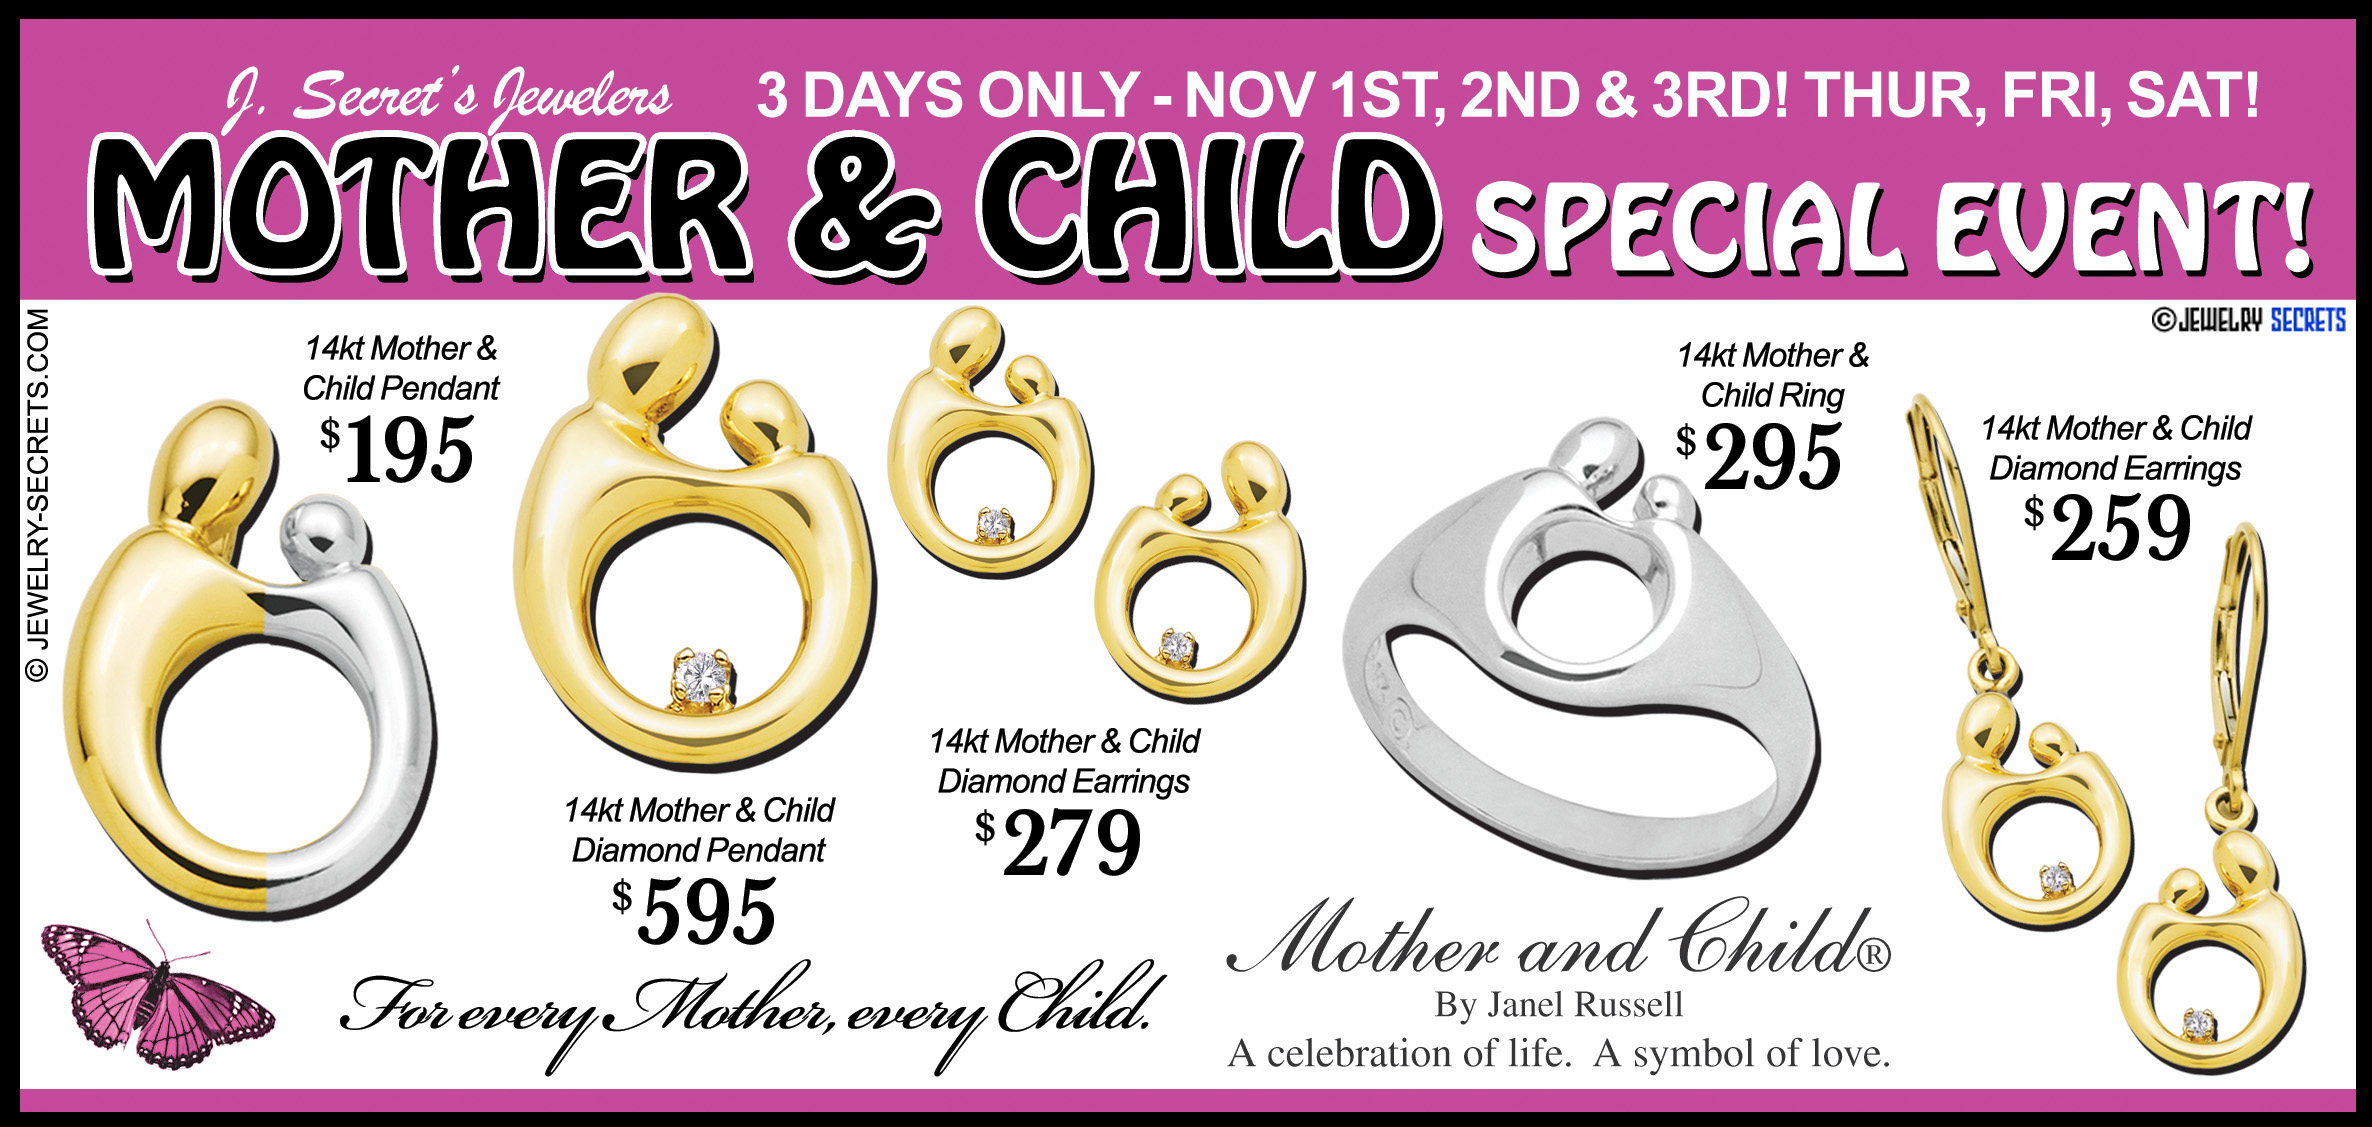 Mother and child postcard sample advertisement jewelry secrets mother and child postcard ad sample advertisement thecheapjerseys Images